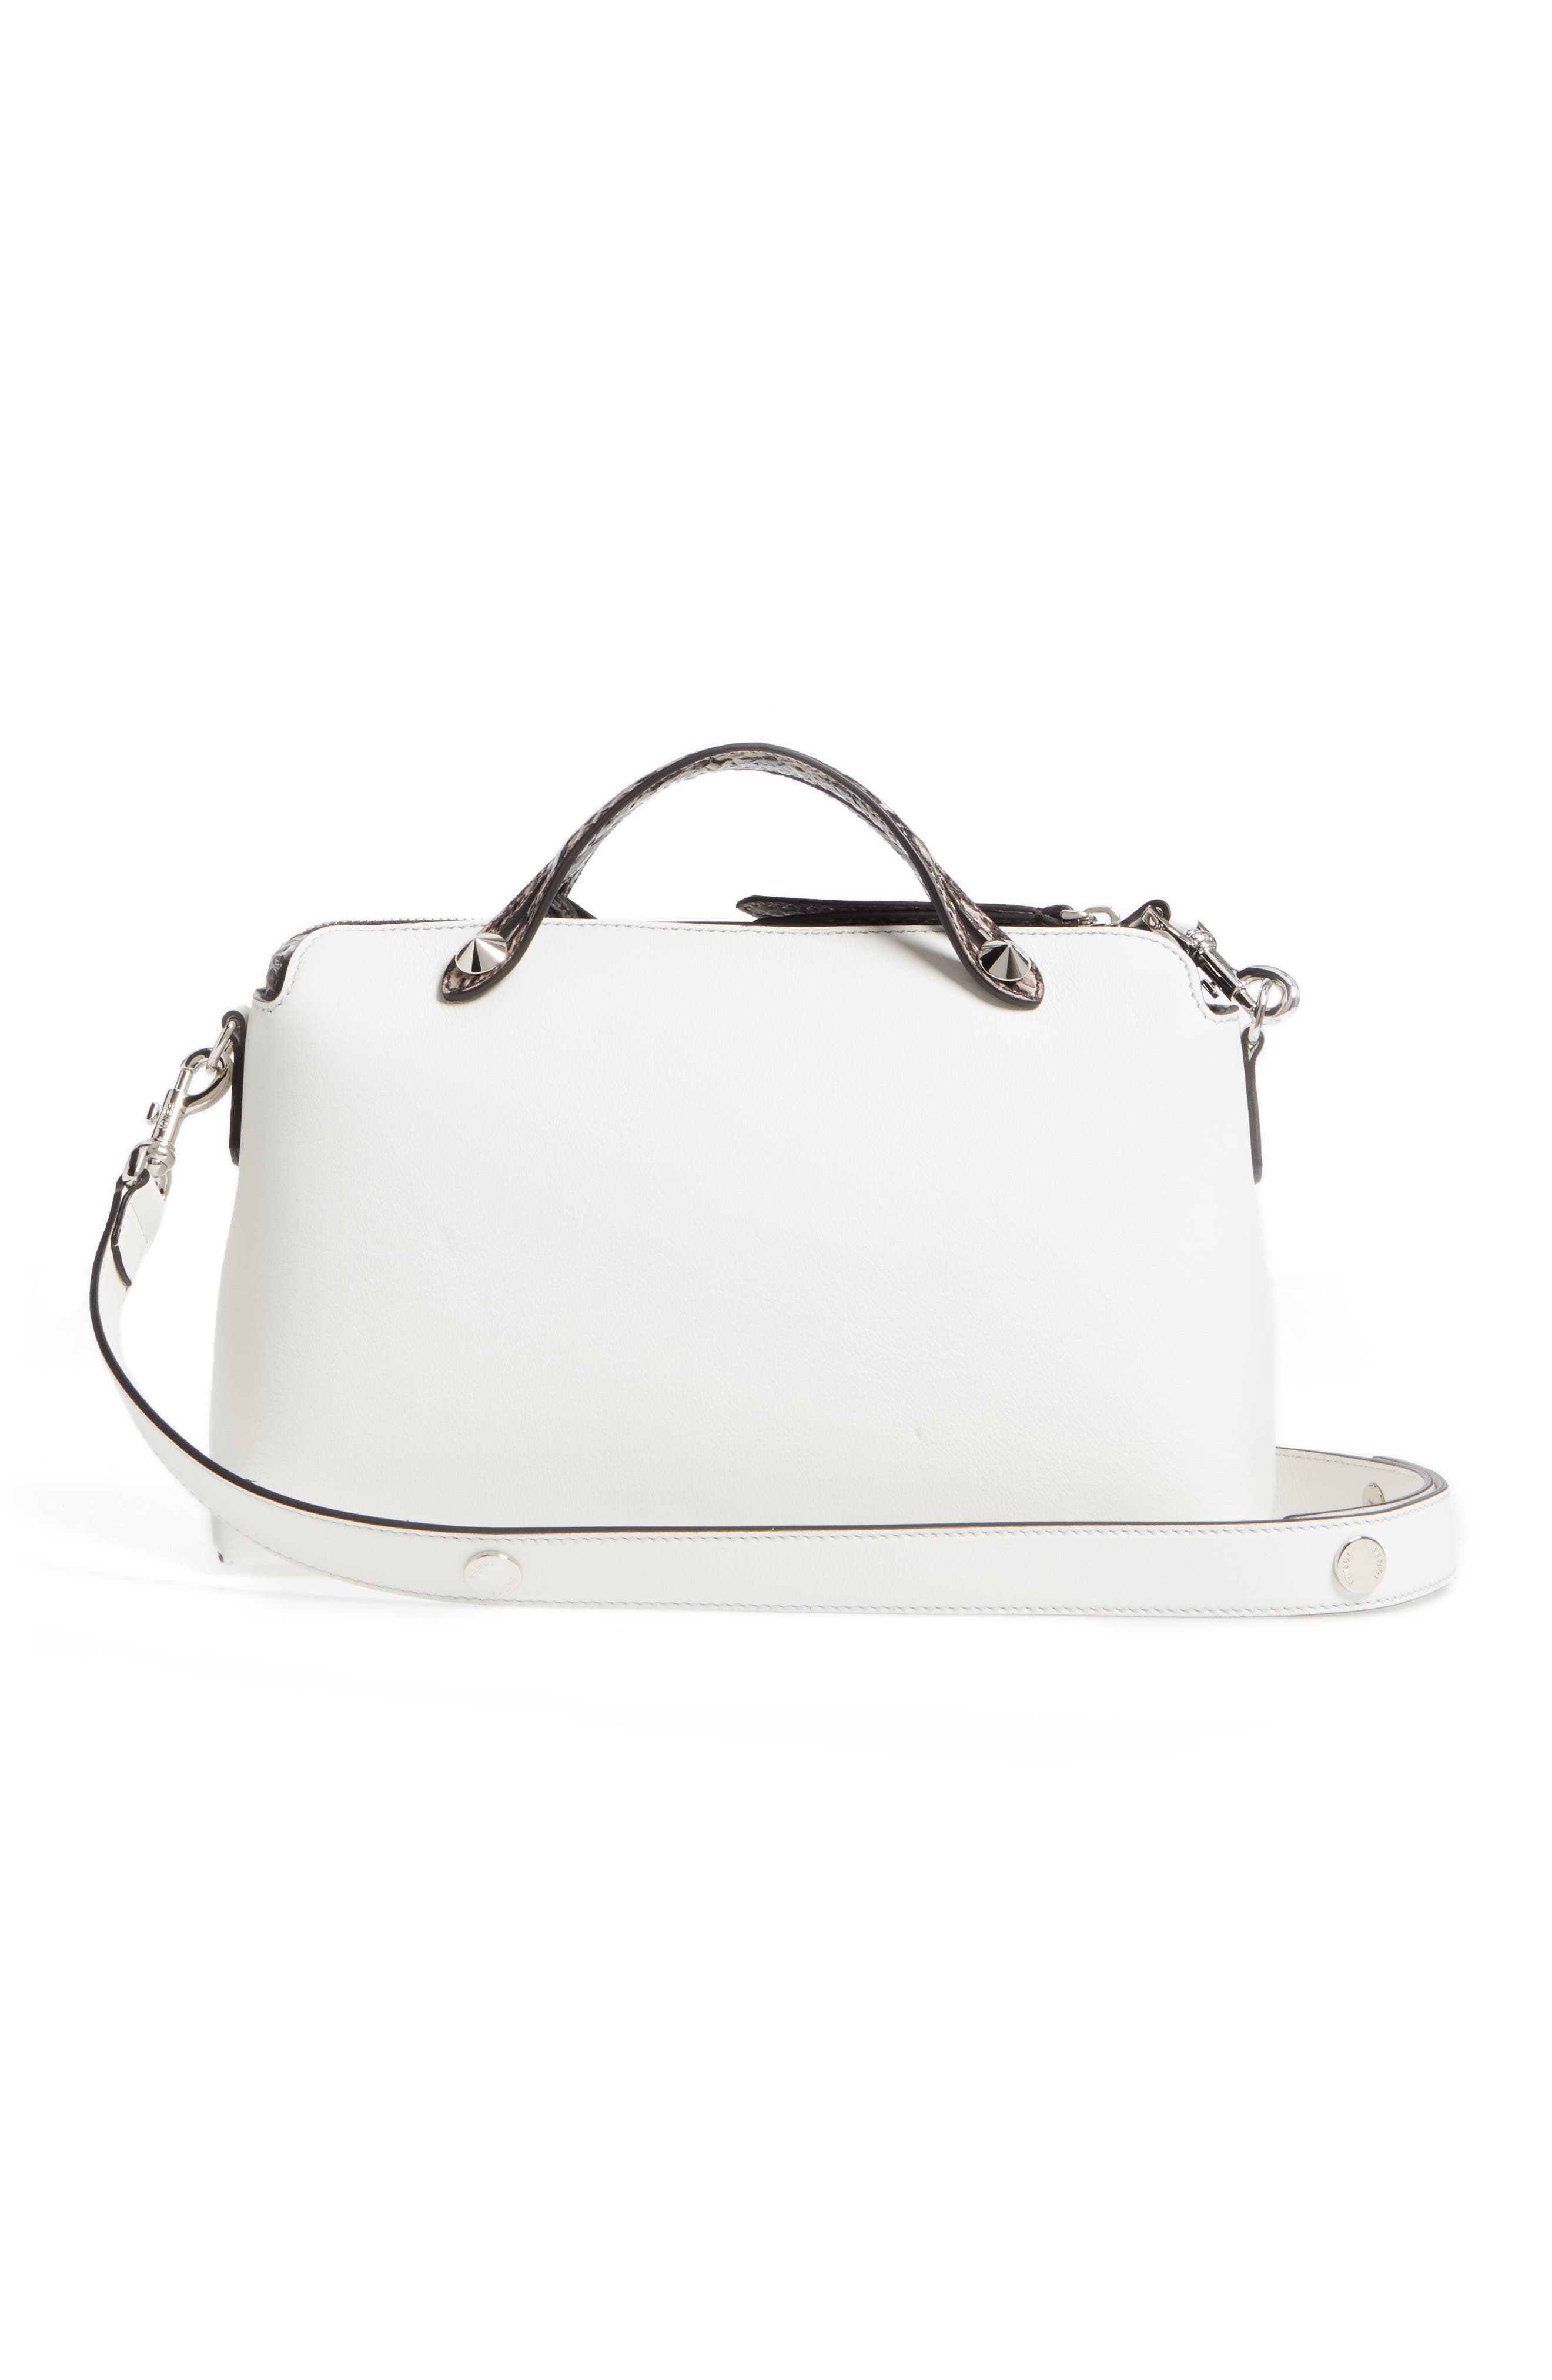 'Medium By the Way' Calfskin Leather Shoulder Bag with Genuine Snakeskin Trim,                             Alternate thumbnail 3, color,                             Ice